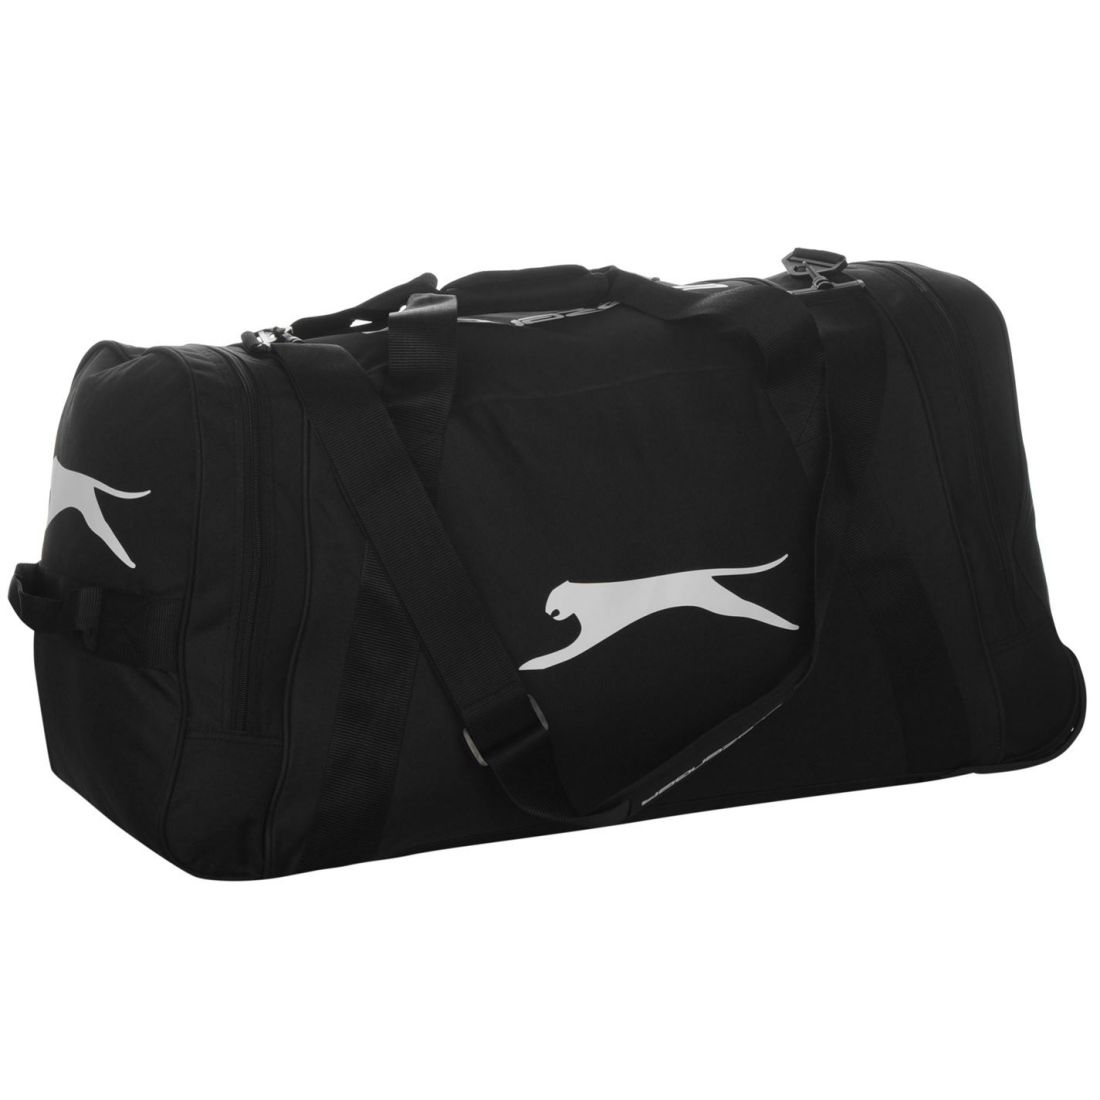 1d196ac90653 Image is loading Slazenger-Wheel-Reinforced-Holdall -Travel-Storage-Luggage-Accessories